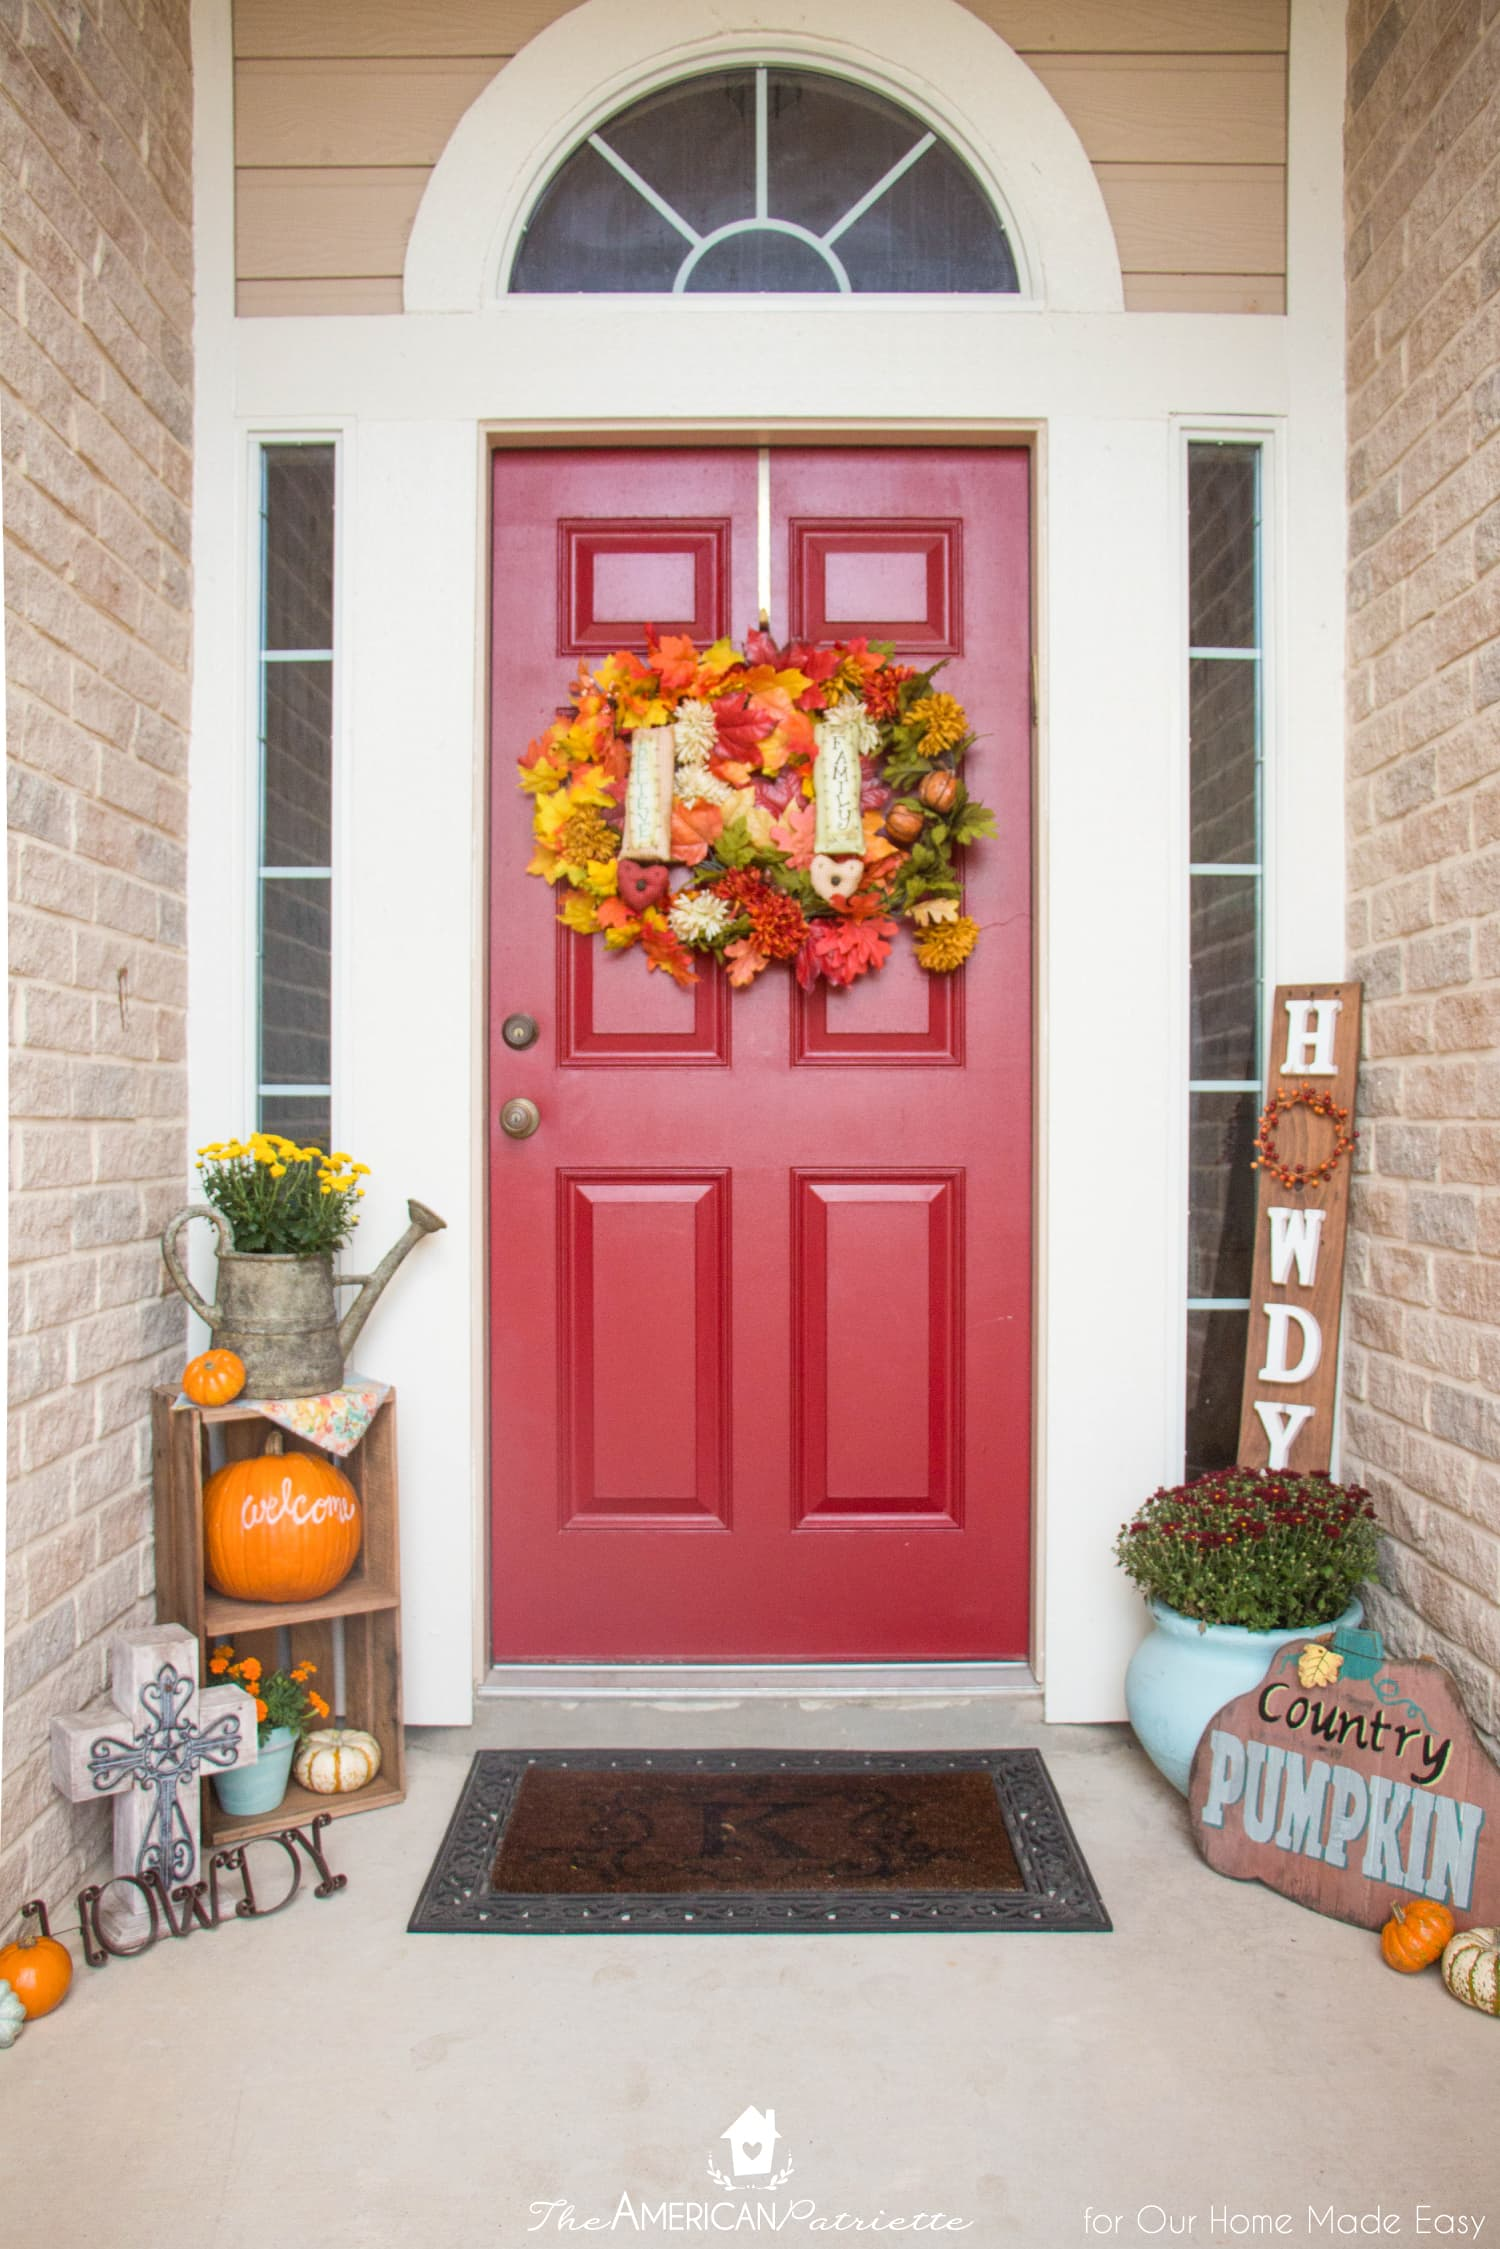 6 Easy Ways To Decorate Your Front Porch With Color • Our Home Made Easy